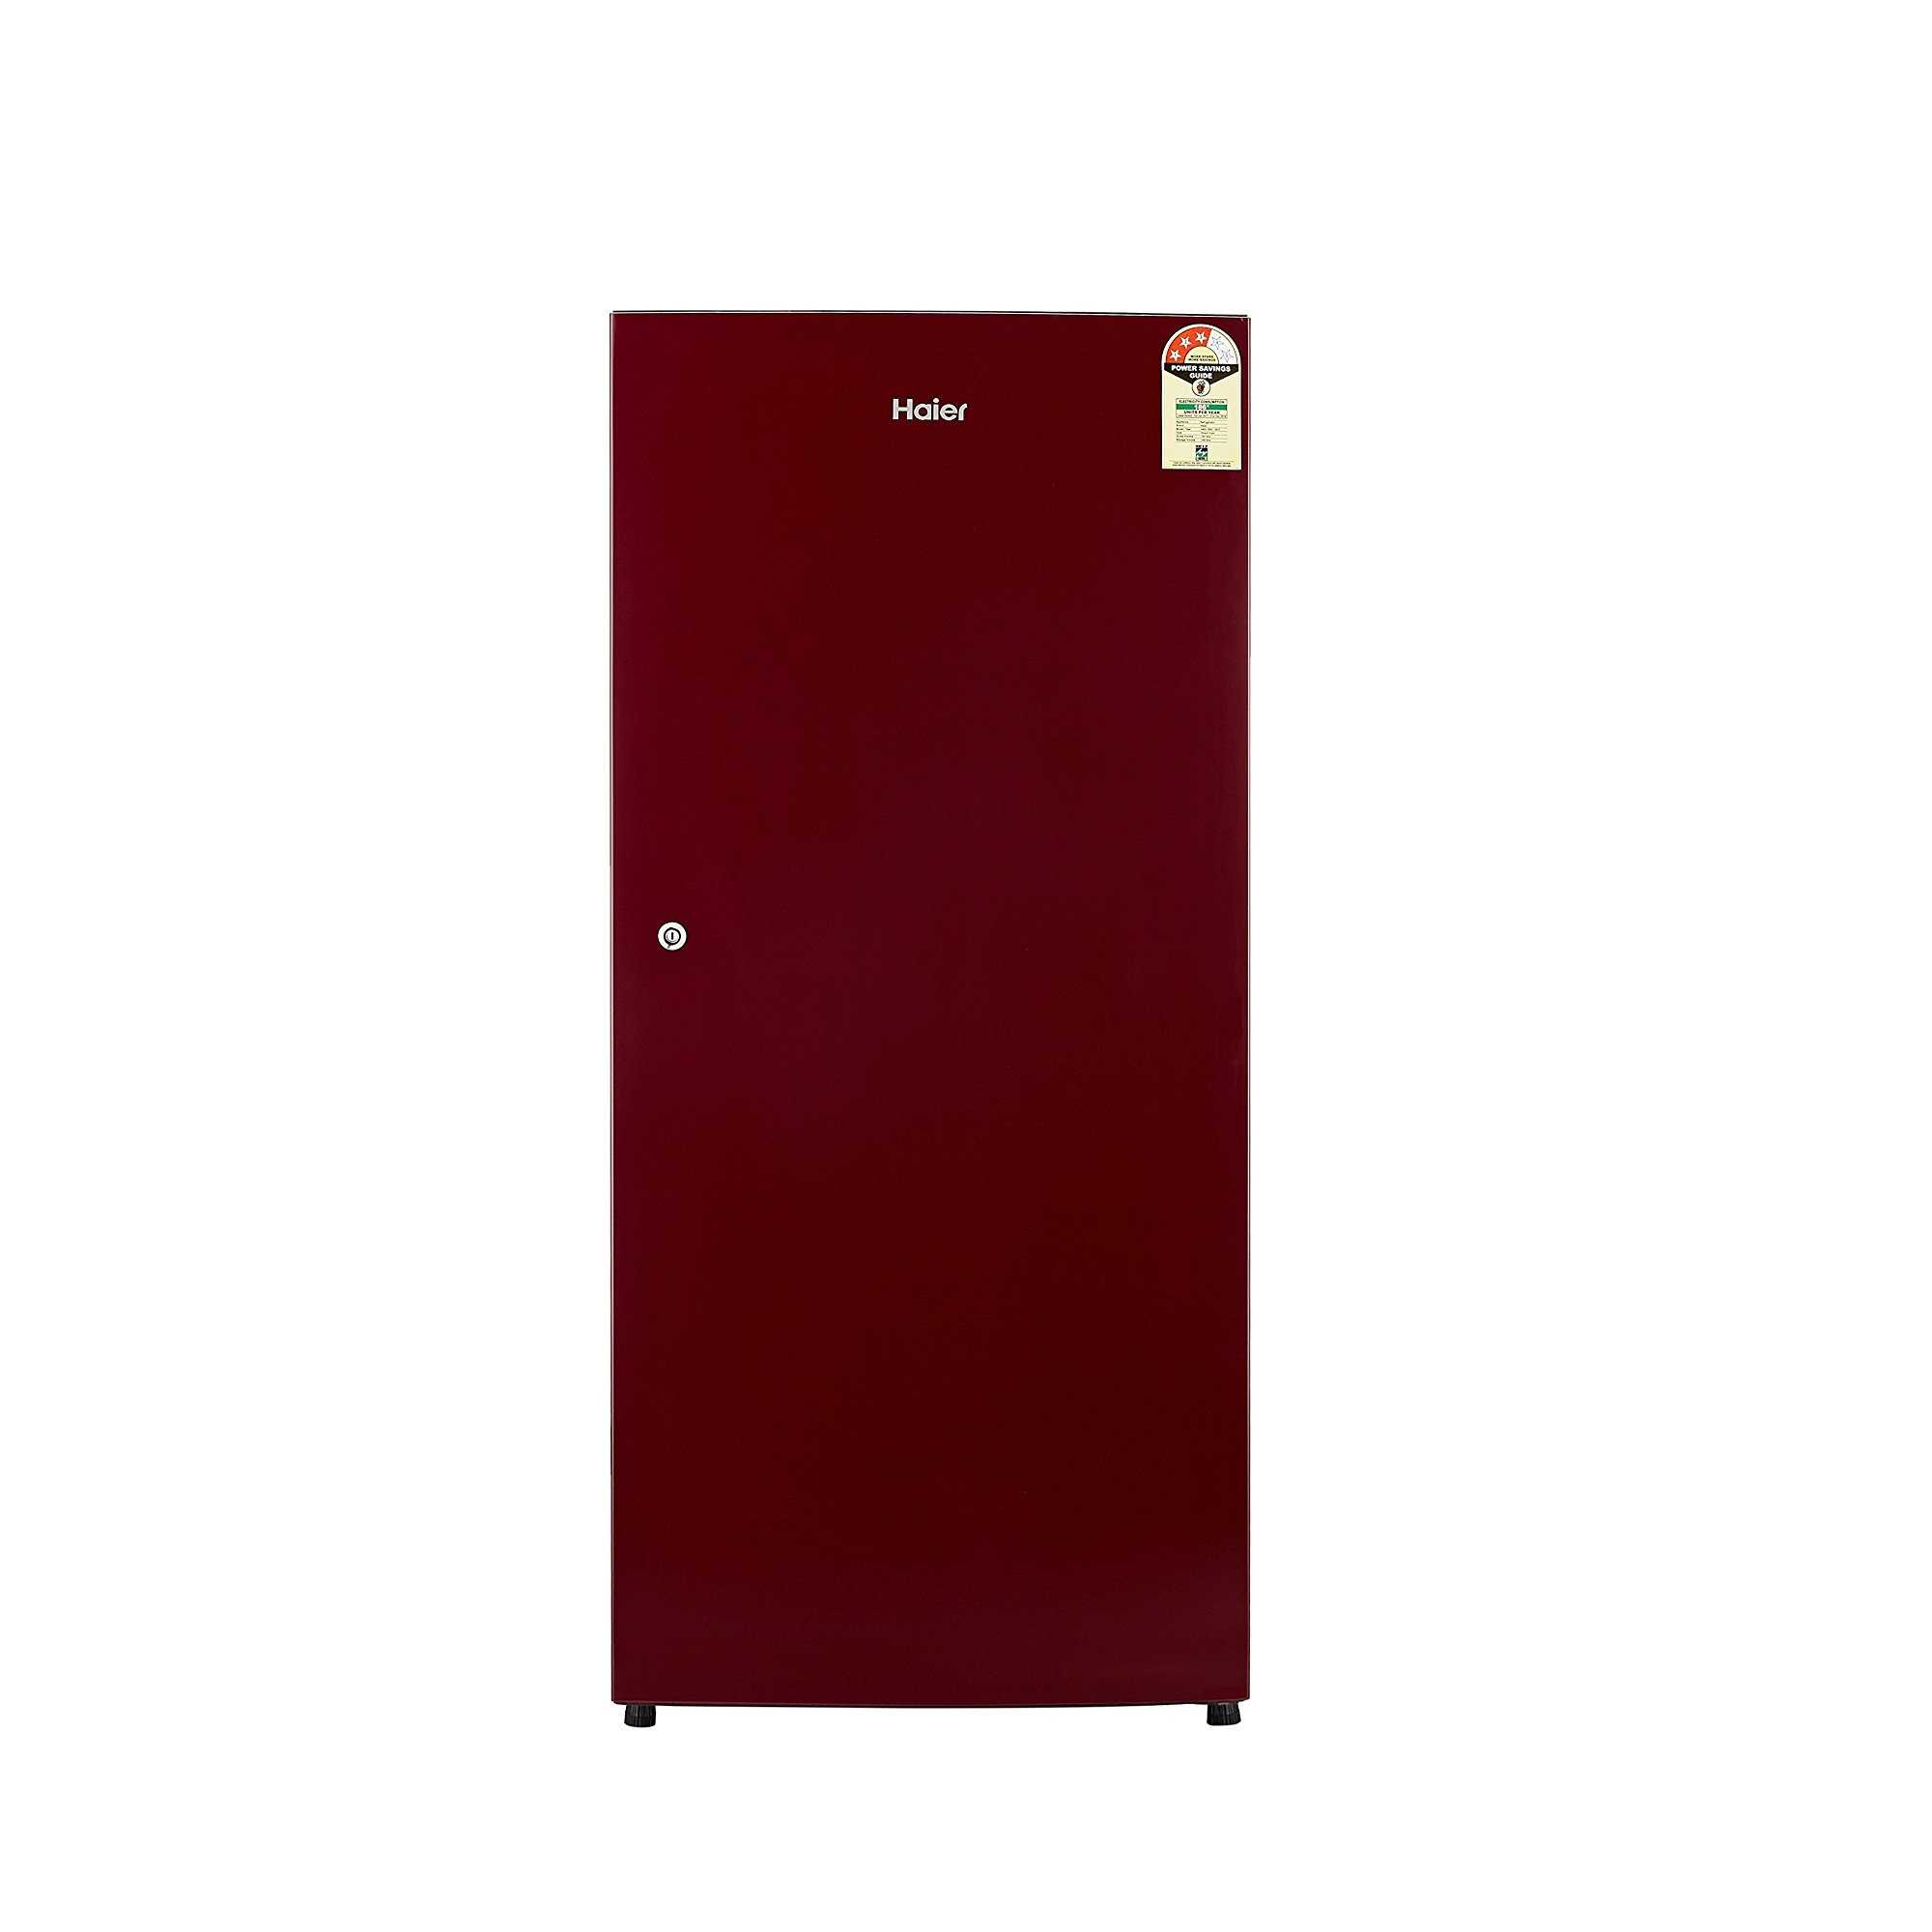 Haier HRD 1953SR R 195 Litres Single Door Direct Cool Refrigerator